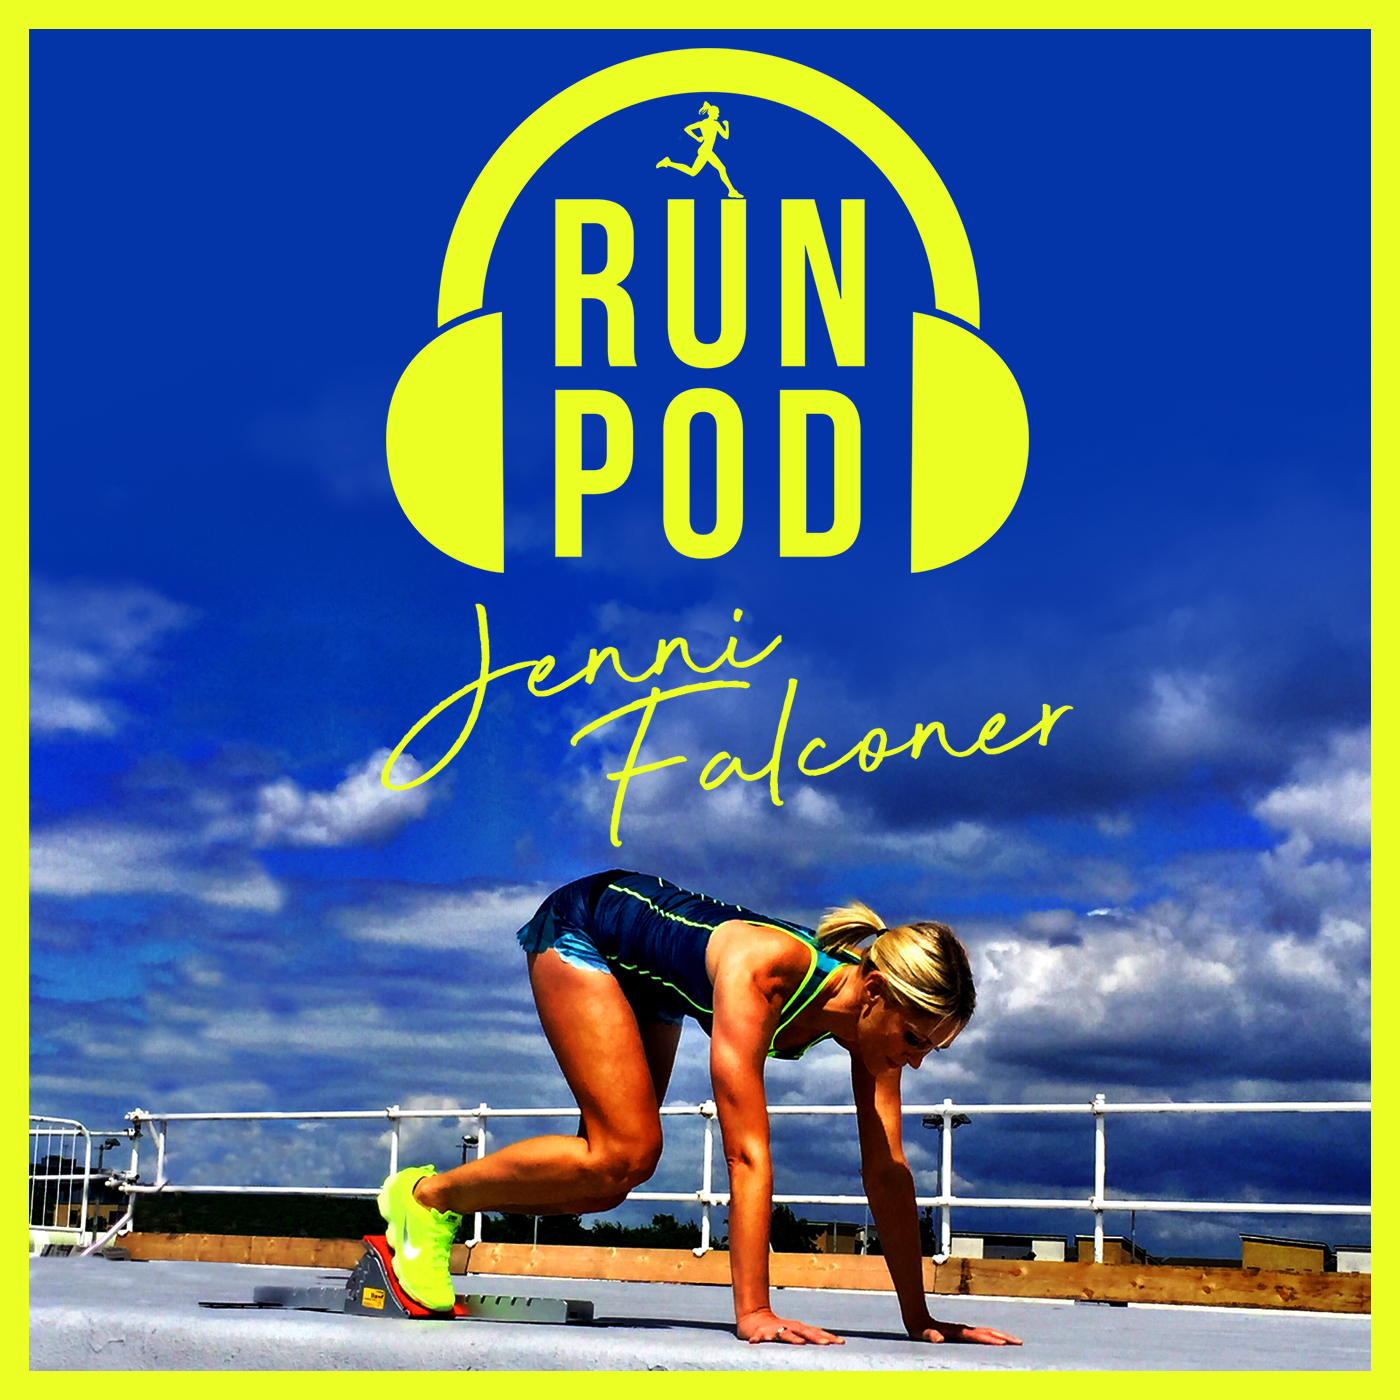 BONUS EPISODE - RunPod on The Road...